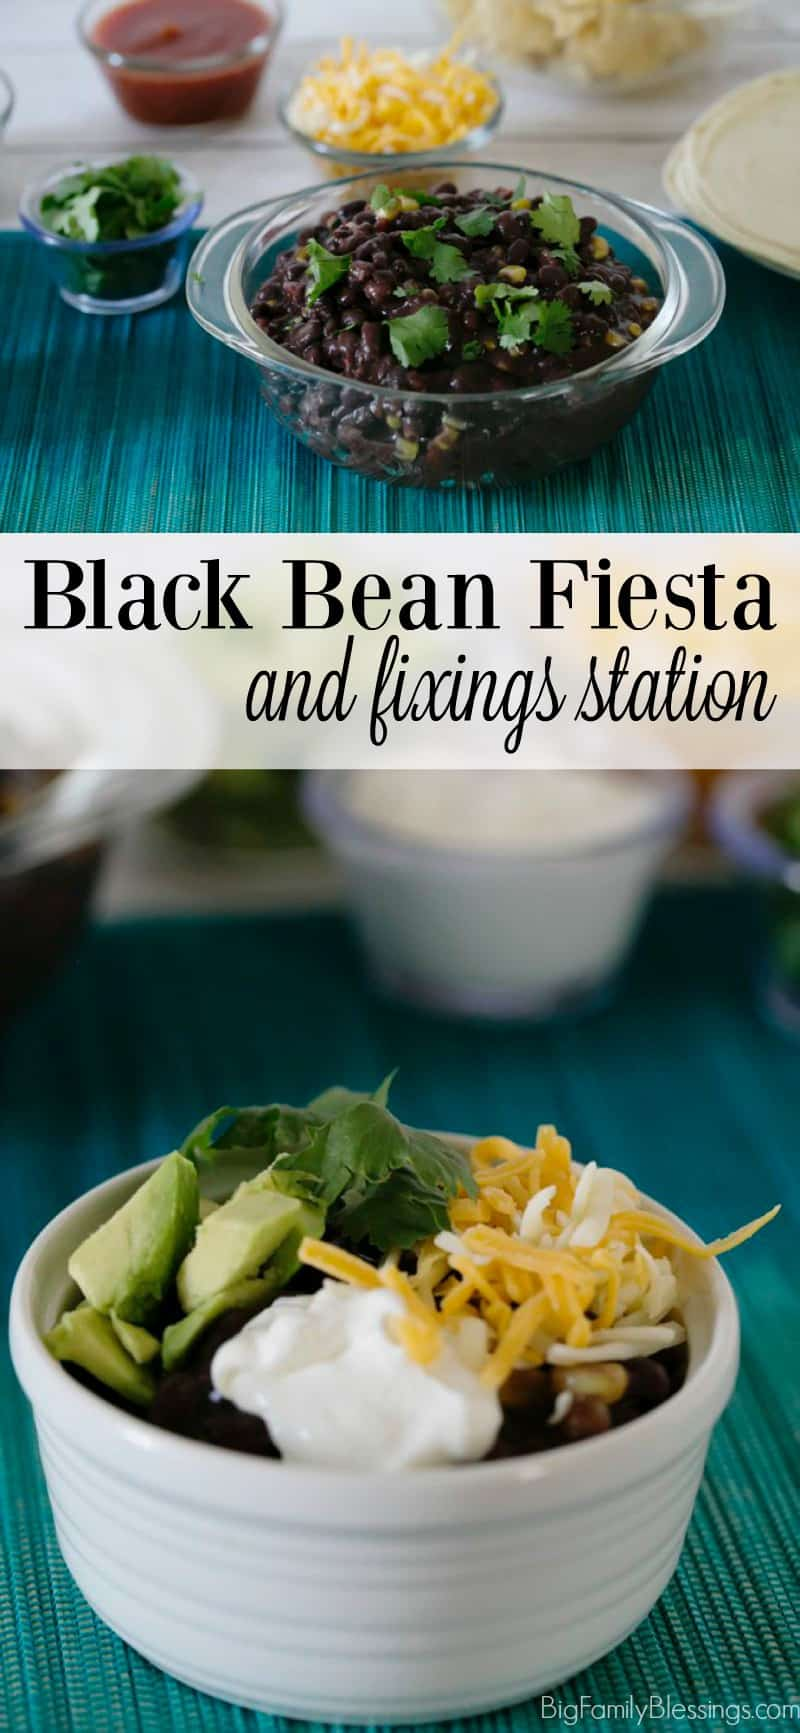 Black Bean Fiesta and Fixings Station - Perfect for stretching your grocery budget with a meatless meal, or the perfect companion to taco night.